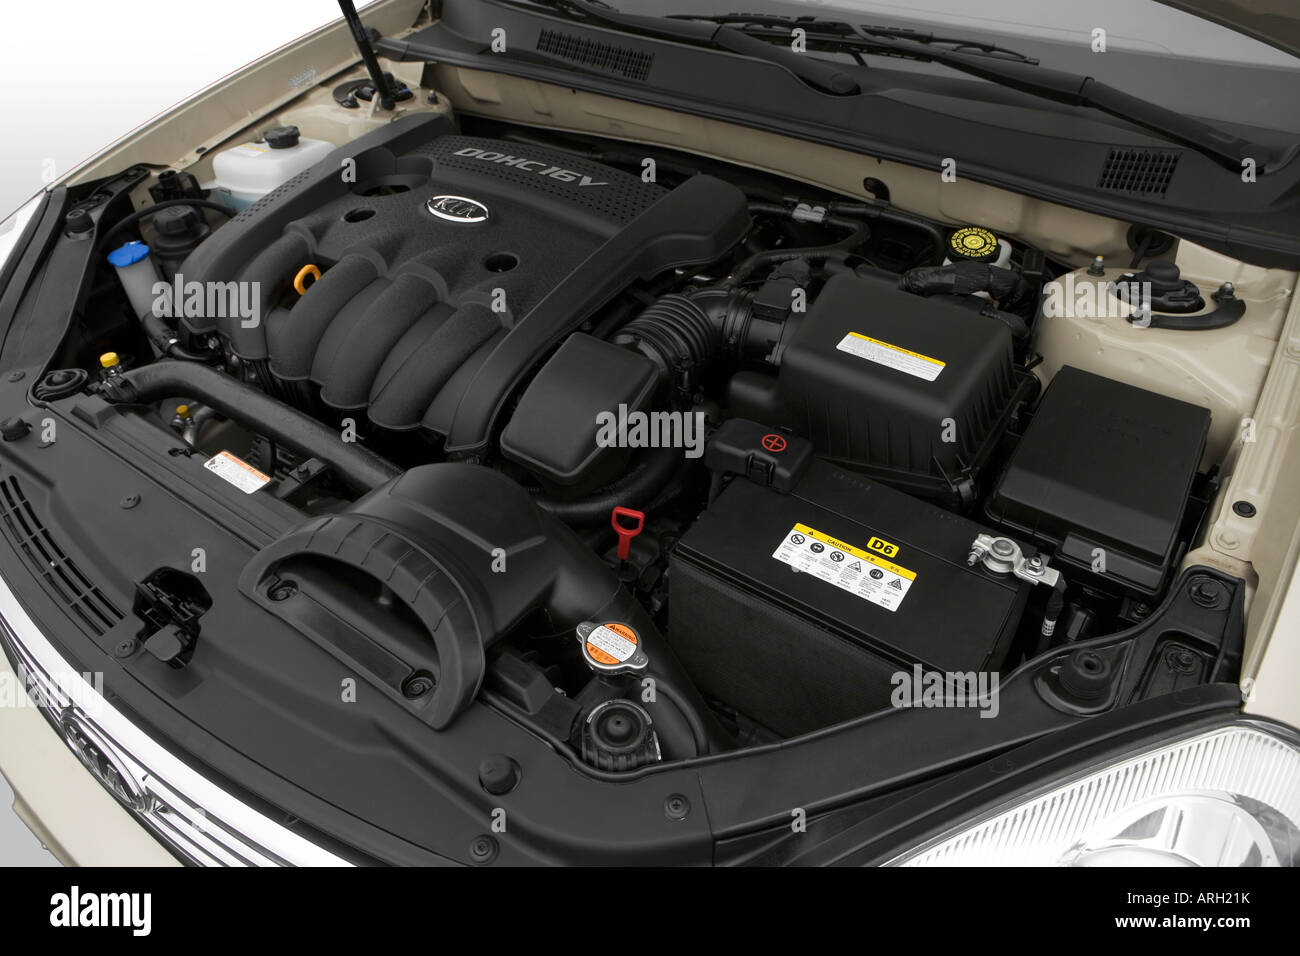 ... 2007 kia optima lx in beige engine stock photo 16053870 alamy ...